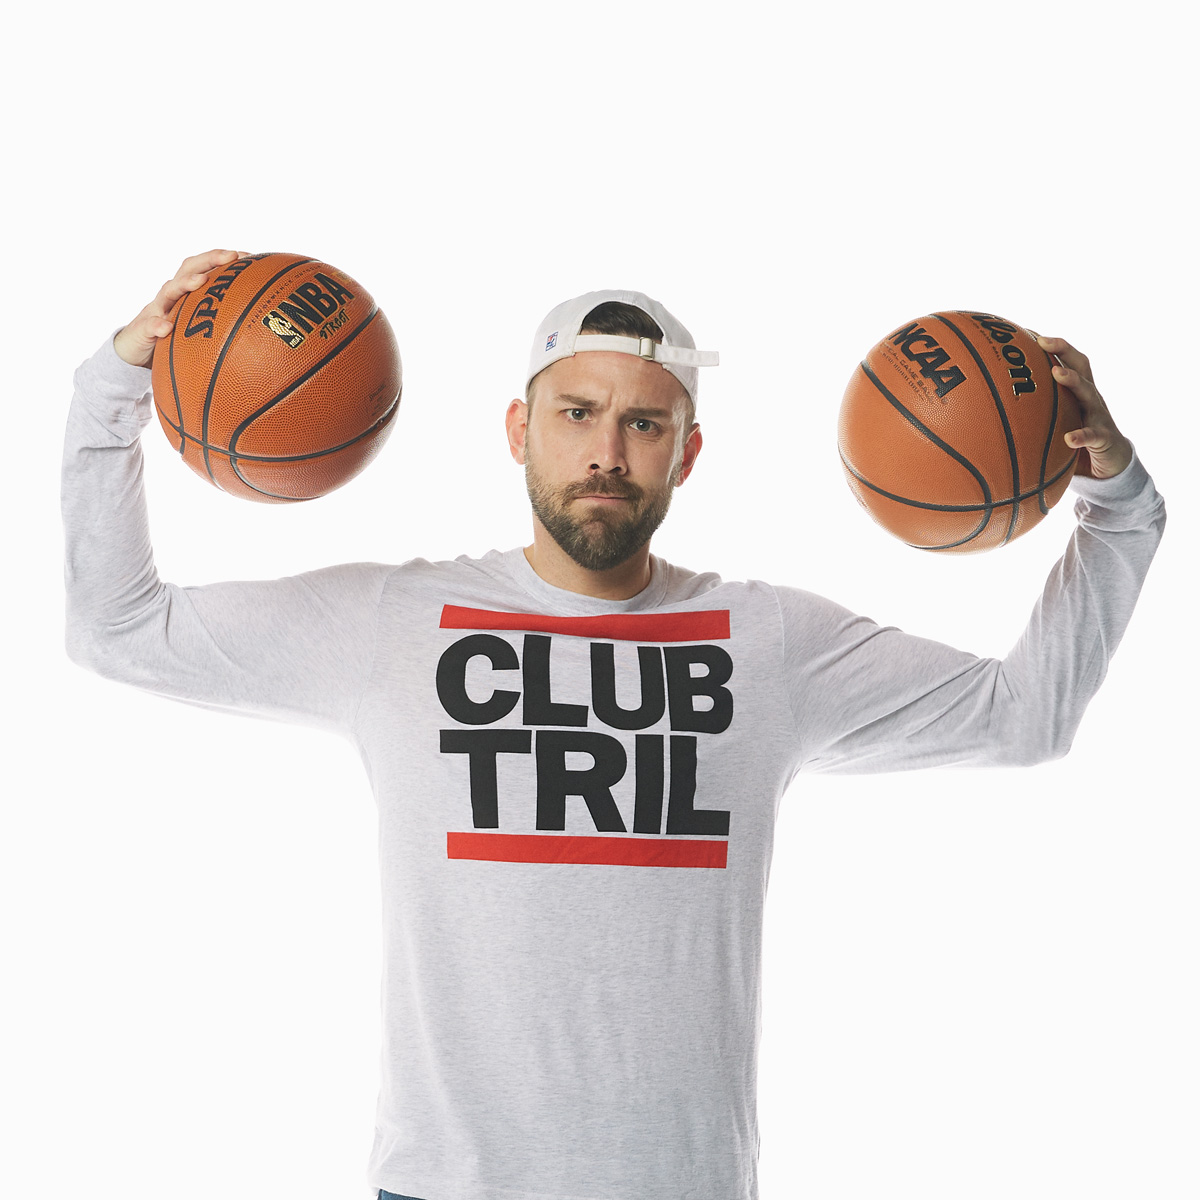 A note fromClub Trillion Foundation founder, former Ohio State basketball walk-on Mark Titus -